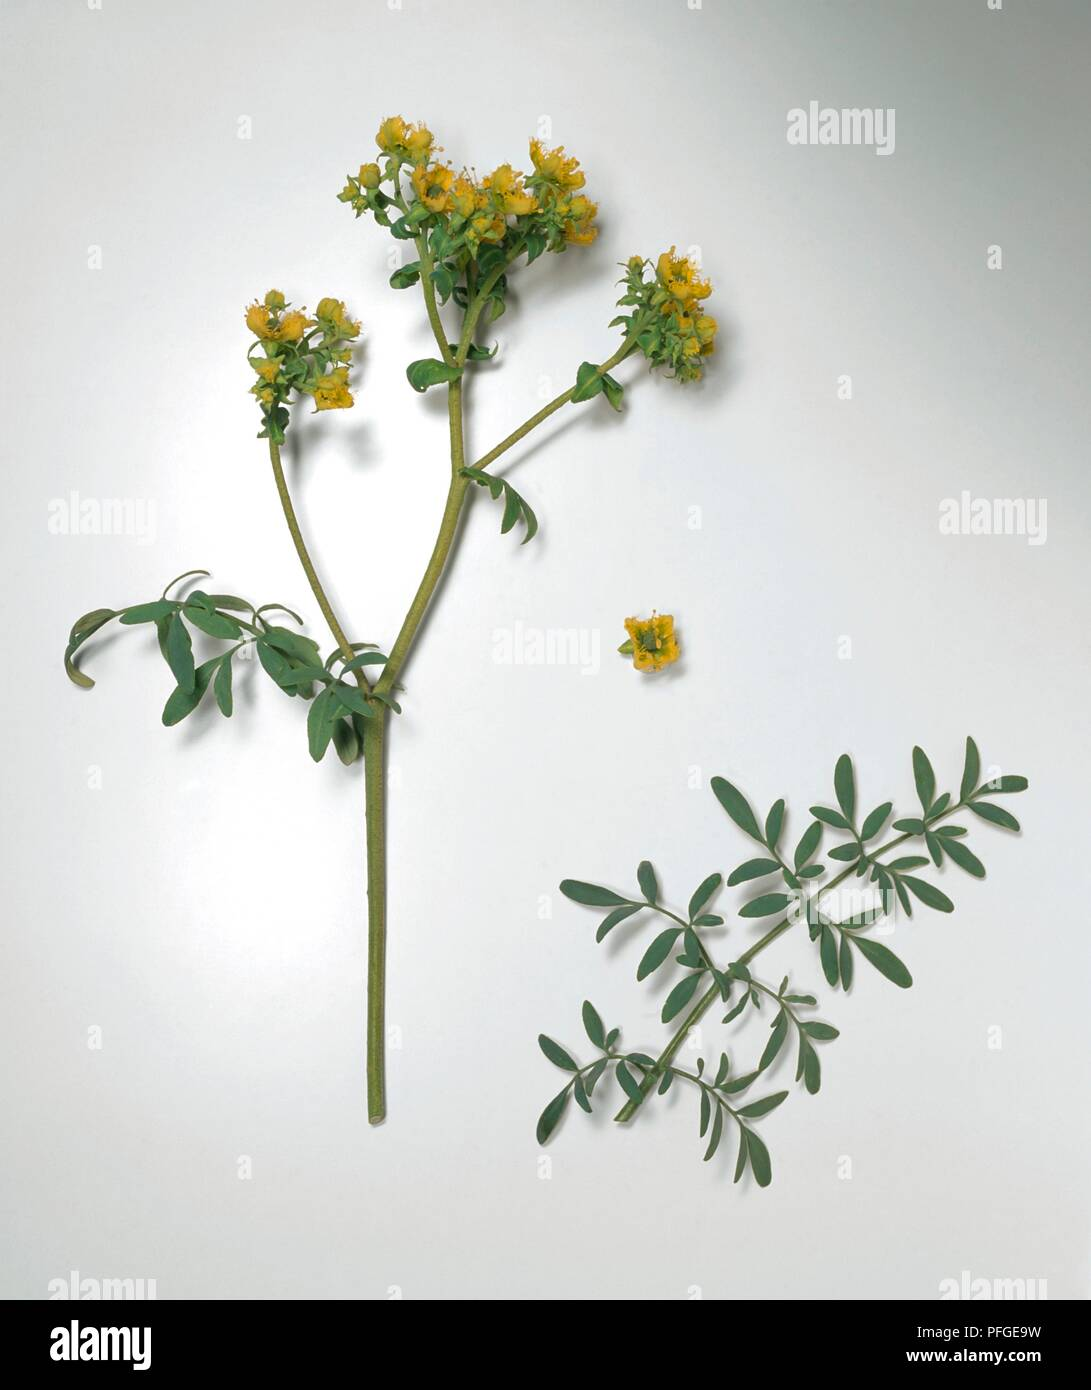 Ruta chalepensis (Fringed Rue), yellow flowers and green leaves on long stems - Stock Image